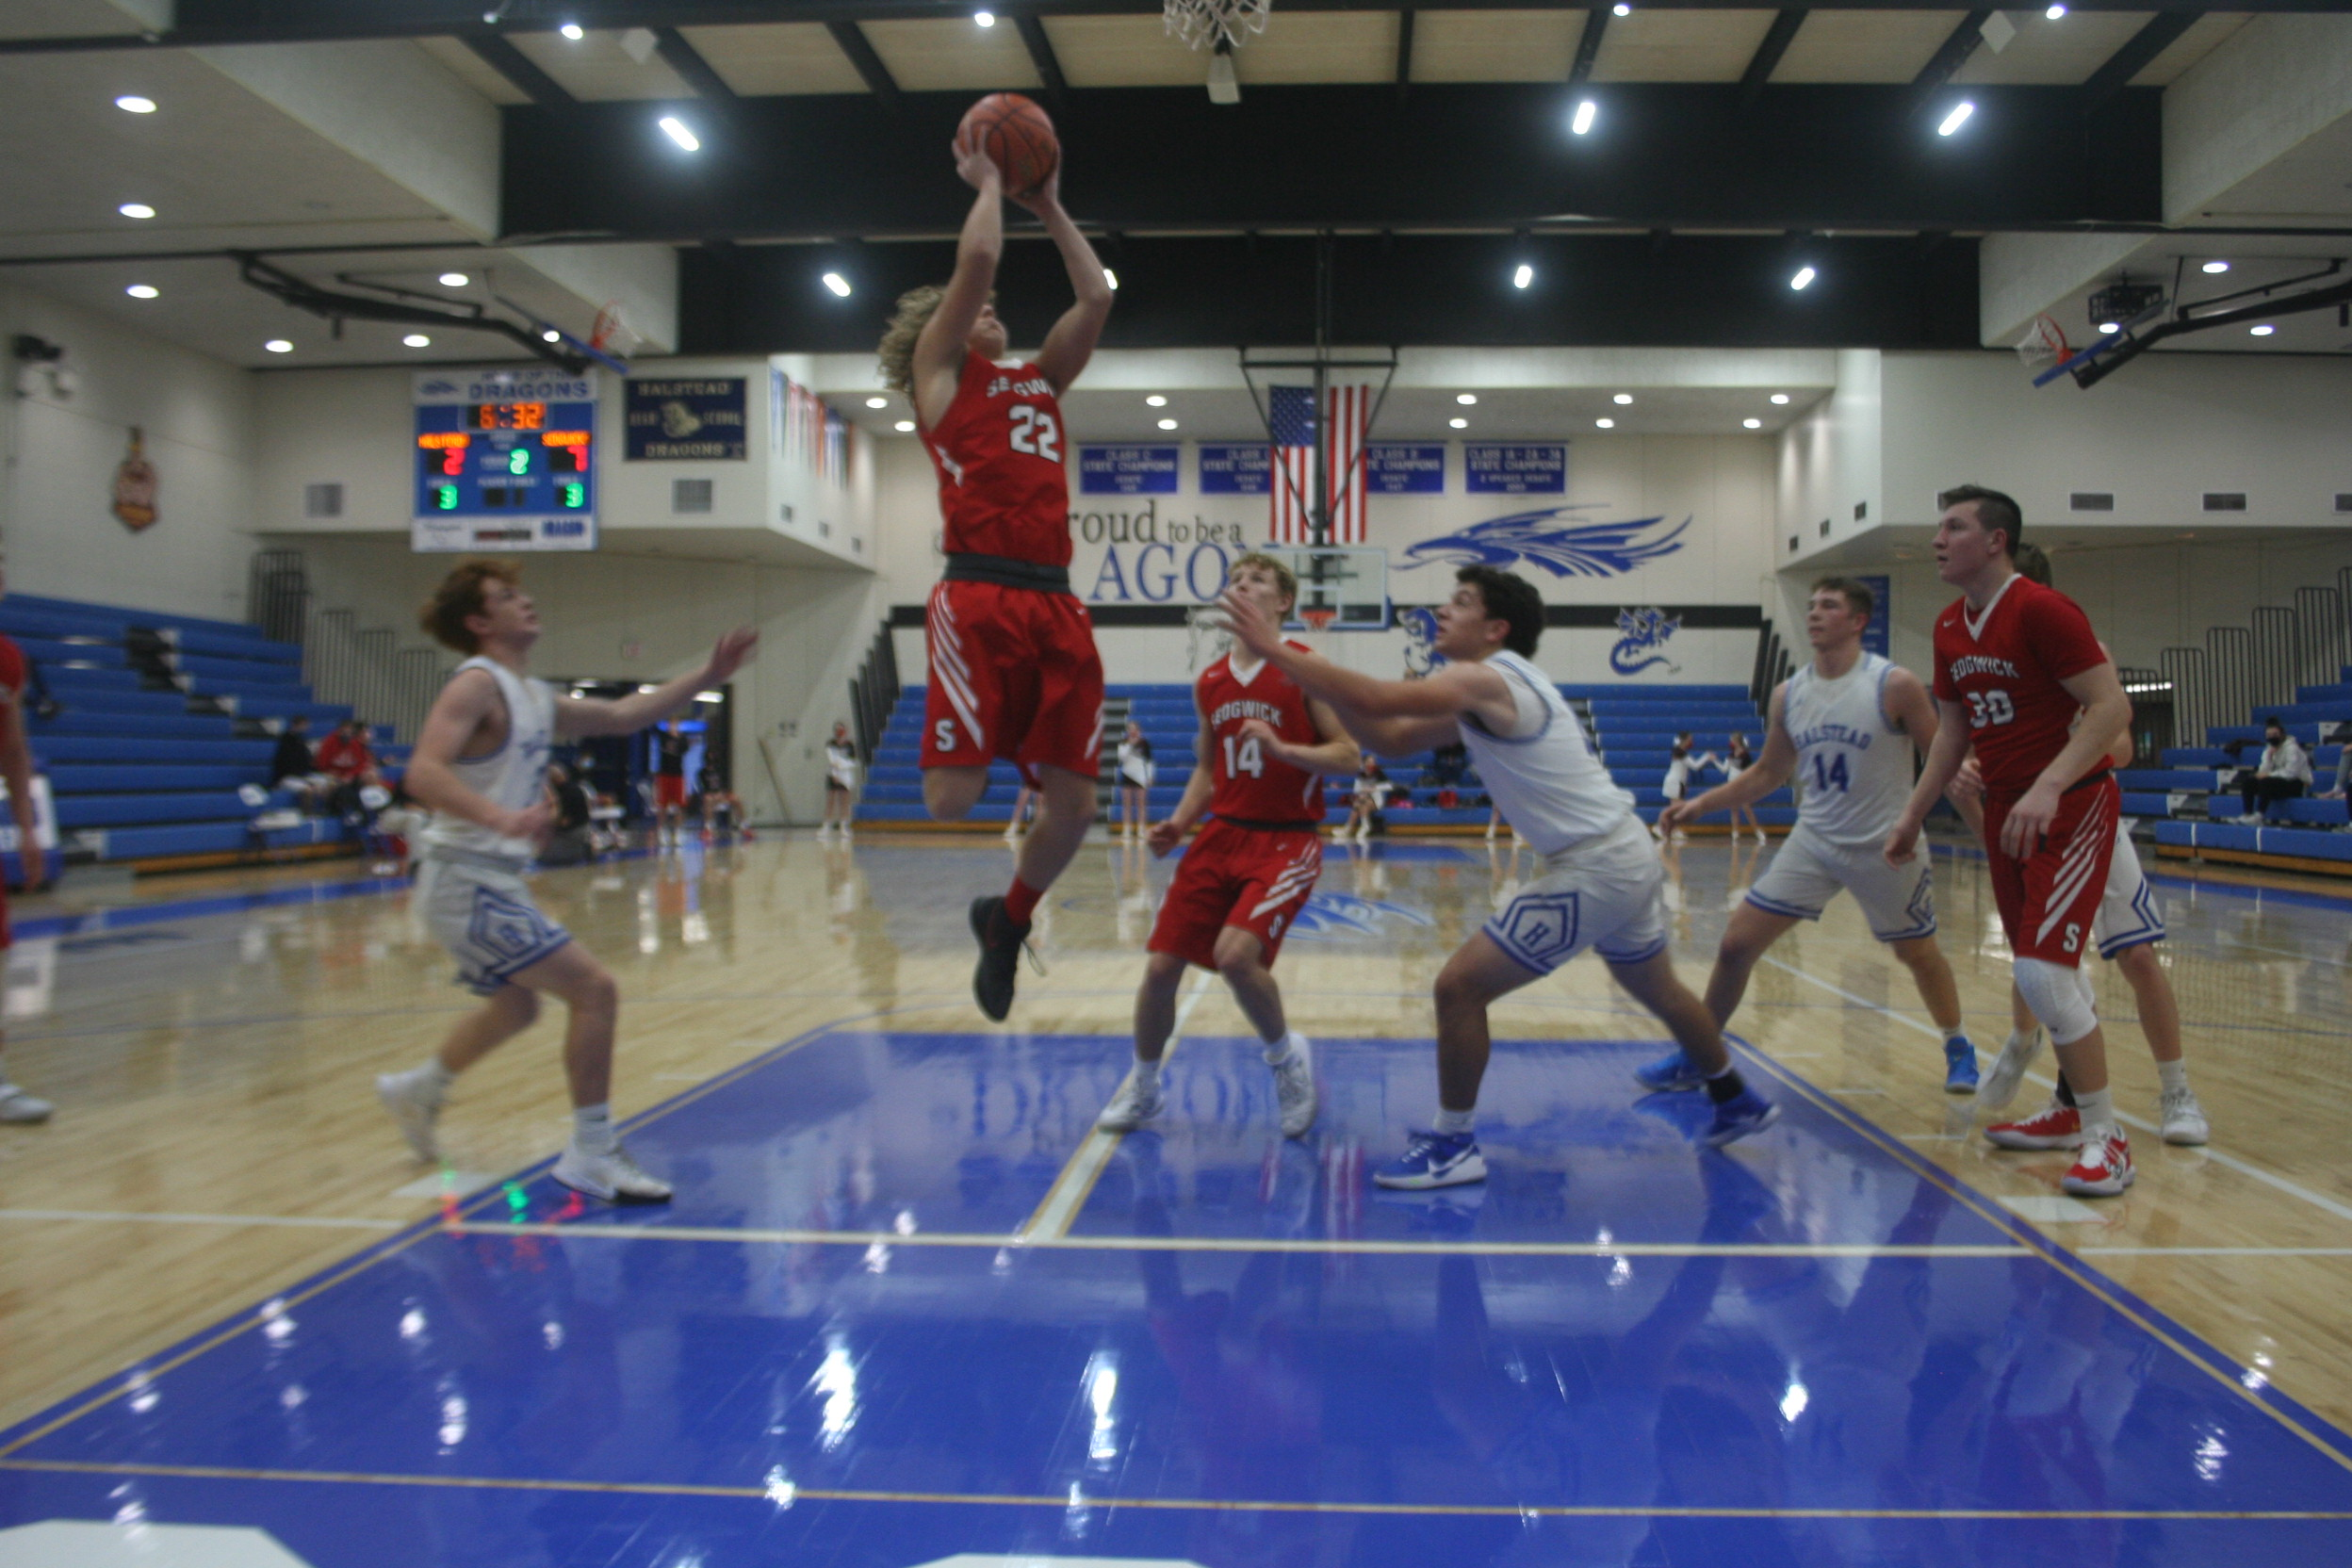 Sedgwick comes away with win, room for improvement in first game